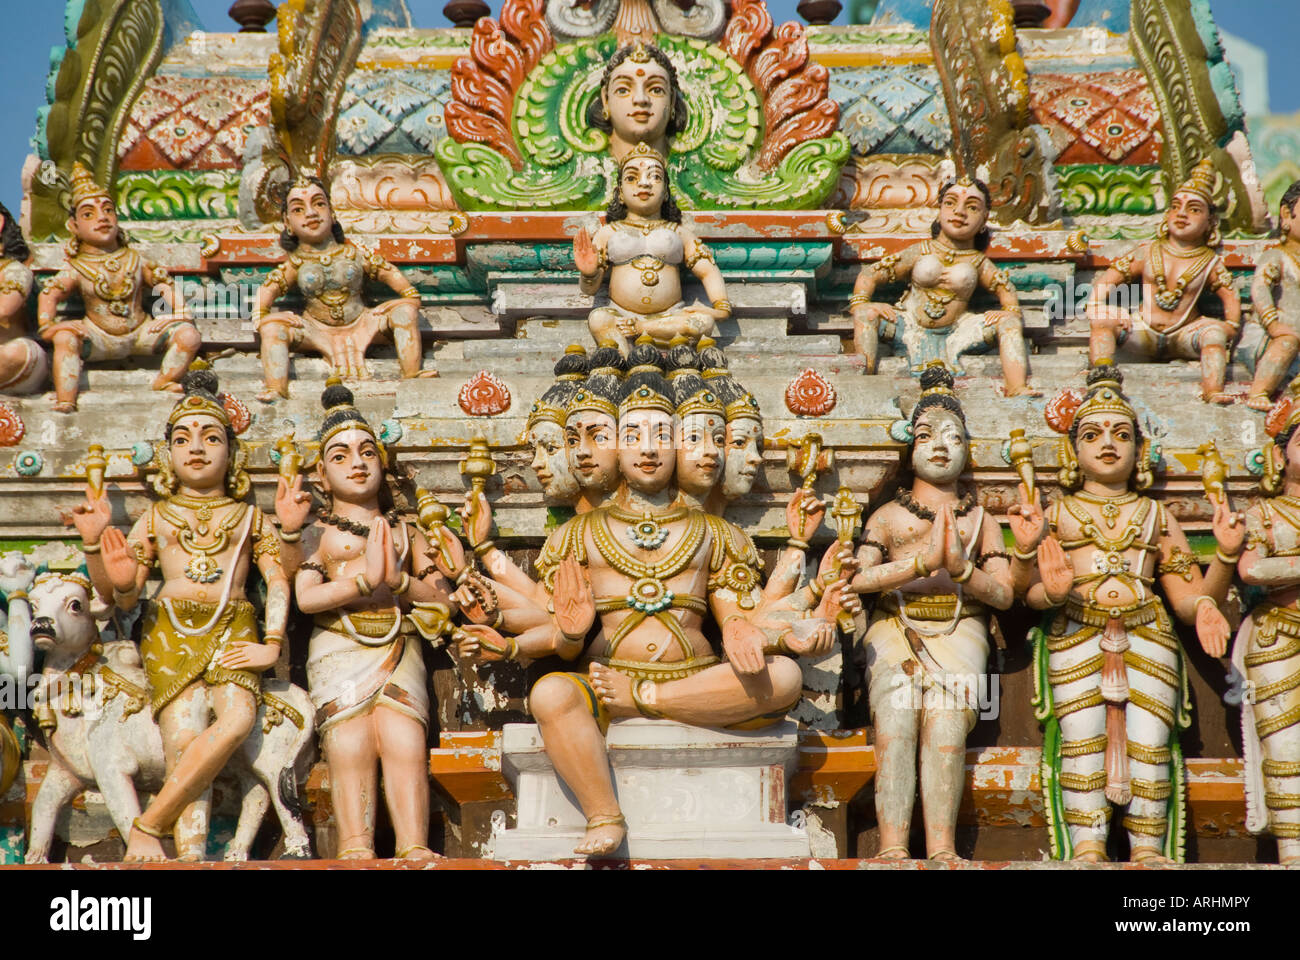 A detail from the Arunachaleswarer Temple in Tiruvannamalai in Tamil Nadu India - Stock Image